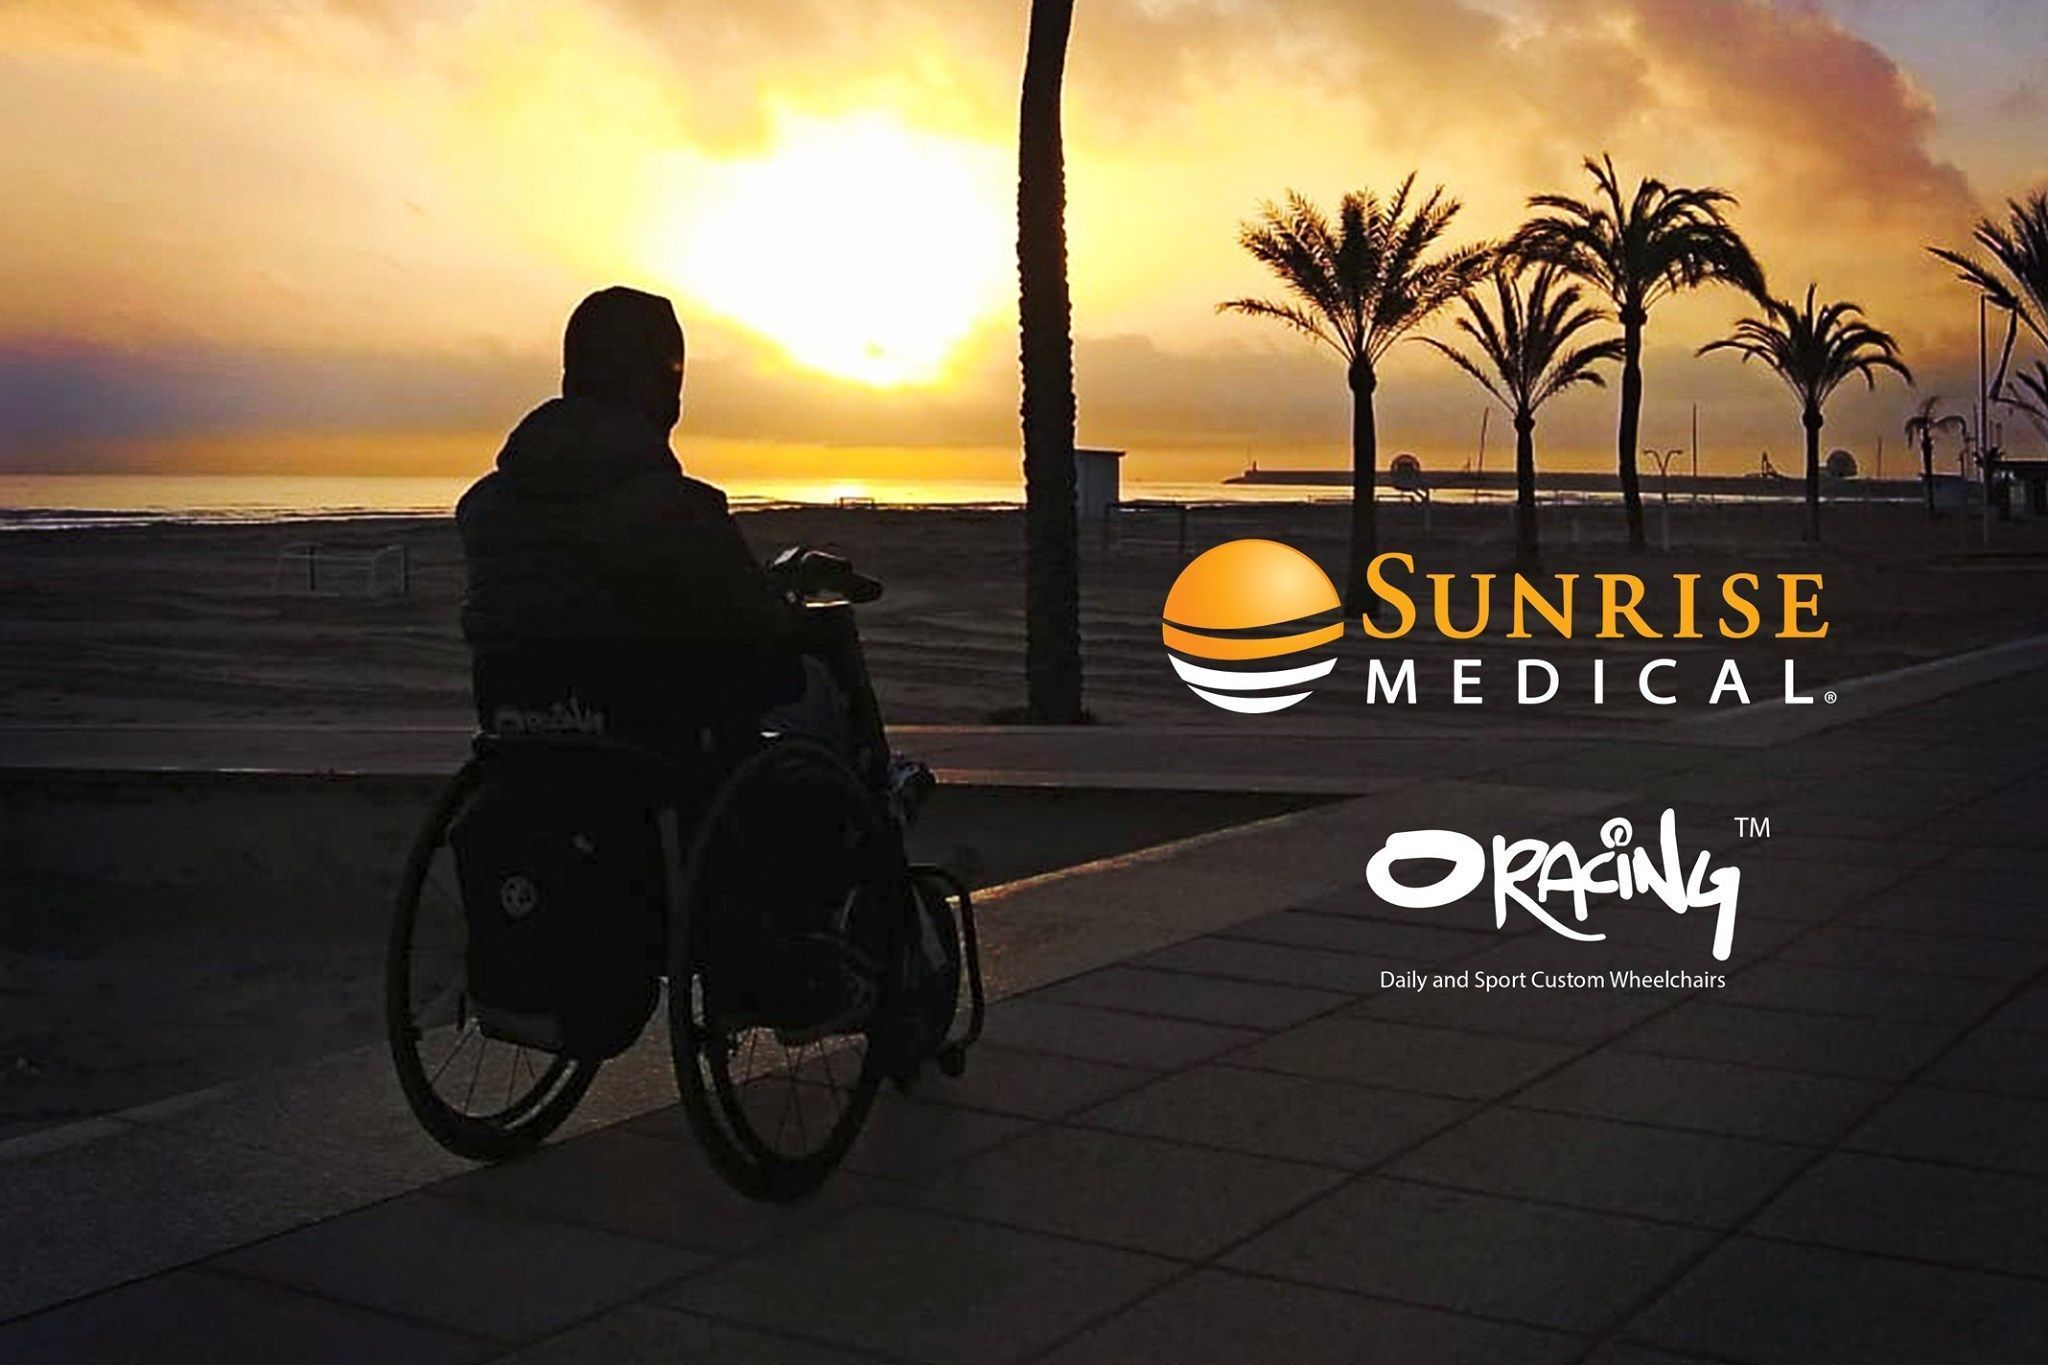 sunrise medical adquiere oracing